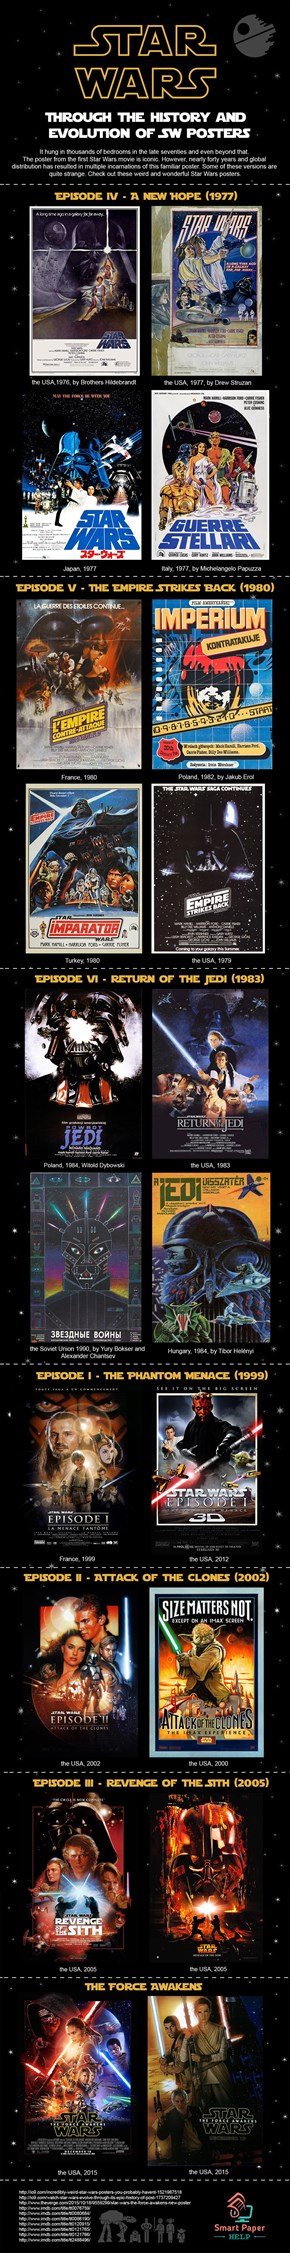 The Evolution of Star Wars Posters